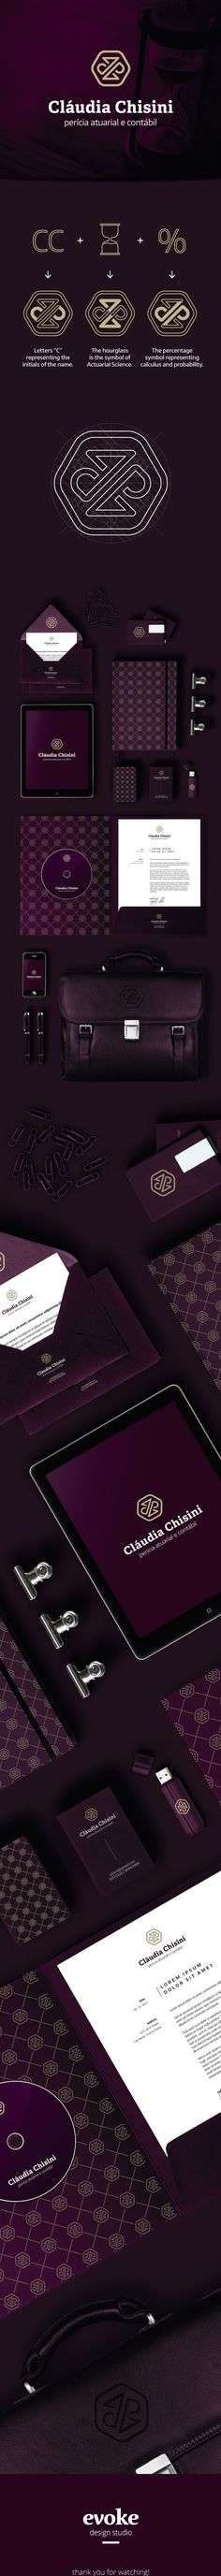 Cláudia Chisini - Actuarial & Accounting by Evoke Design (Branding Served)